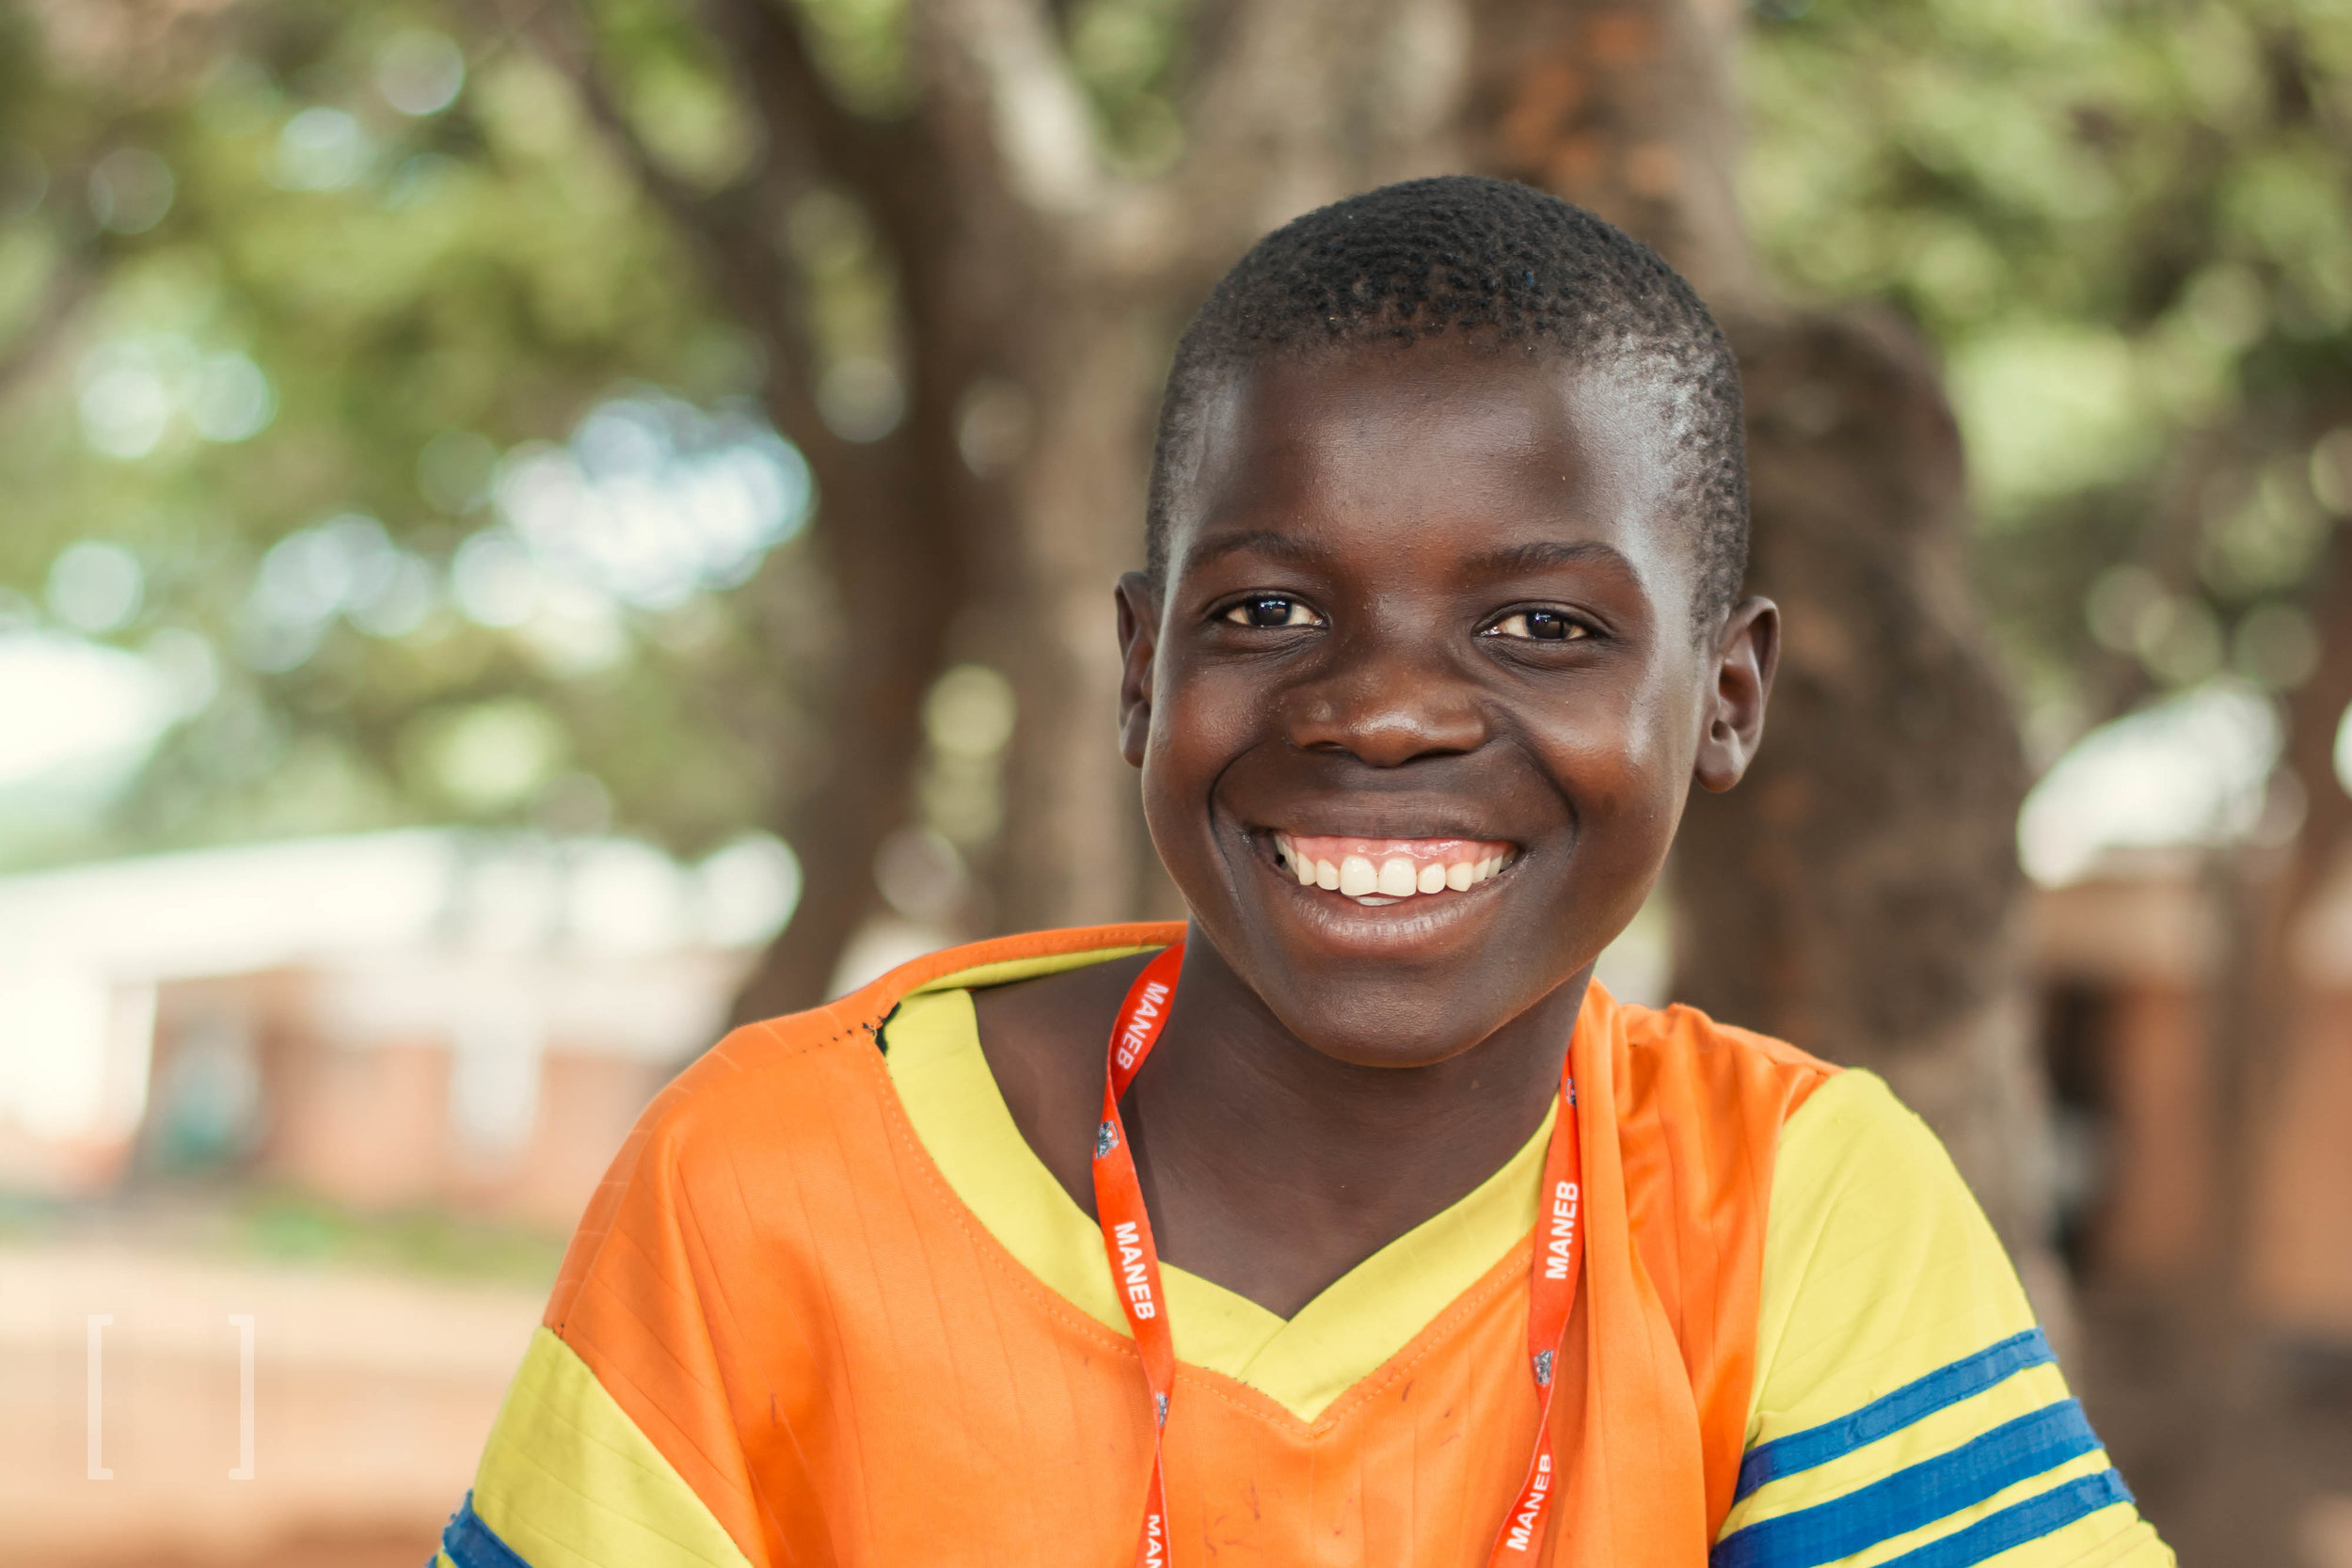 Mike - Mike loves airplanes and aeronotics. He hopes to be a pilot for Malawi Airlines. Help Mike's dream takeoff!